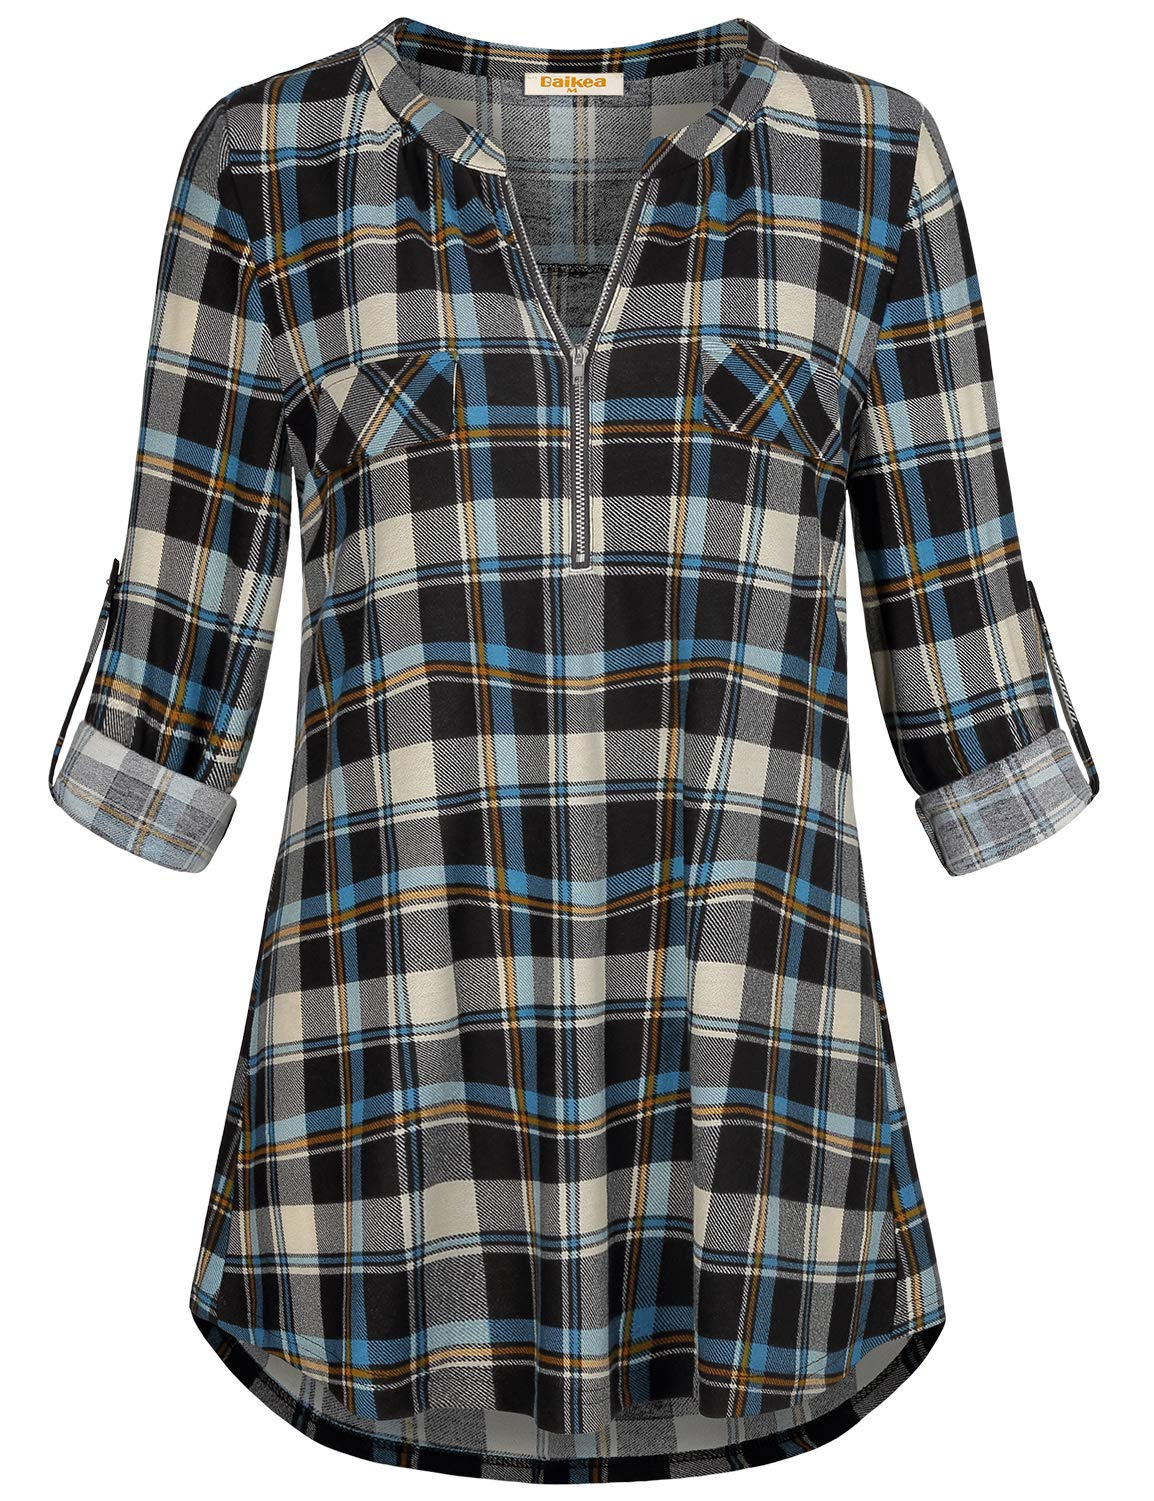 Baikea Notch Neck Shirt for Women, Ladies Retro Style Career Clothes Comfy Henley Mandarin Collared 3/4 Cuffed Long Sleeve Plaid Top to Wear with Leggings Maternity Checkered Blouses at Home Blue XXL